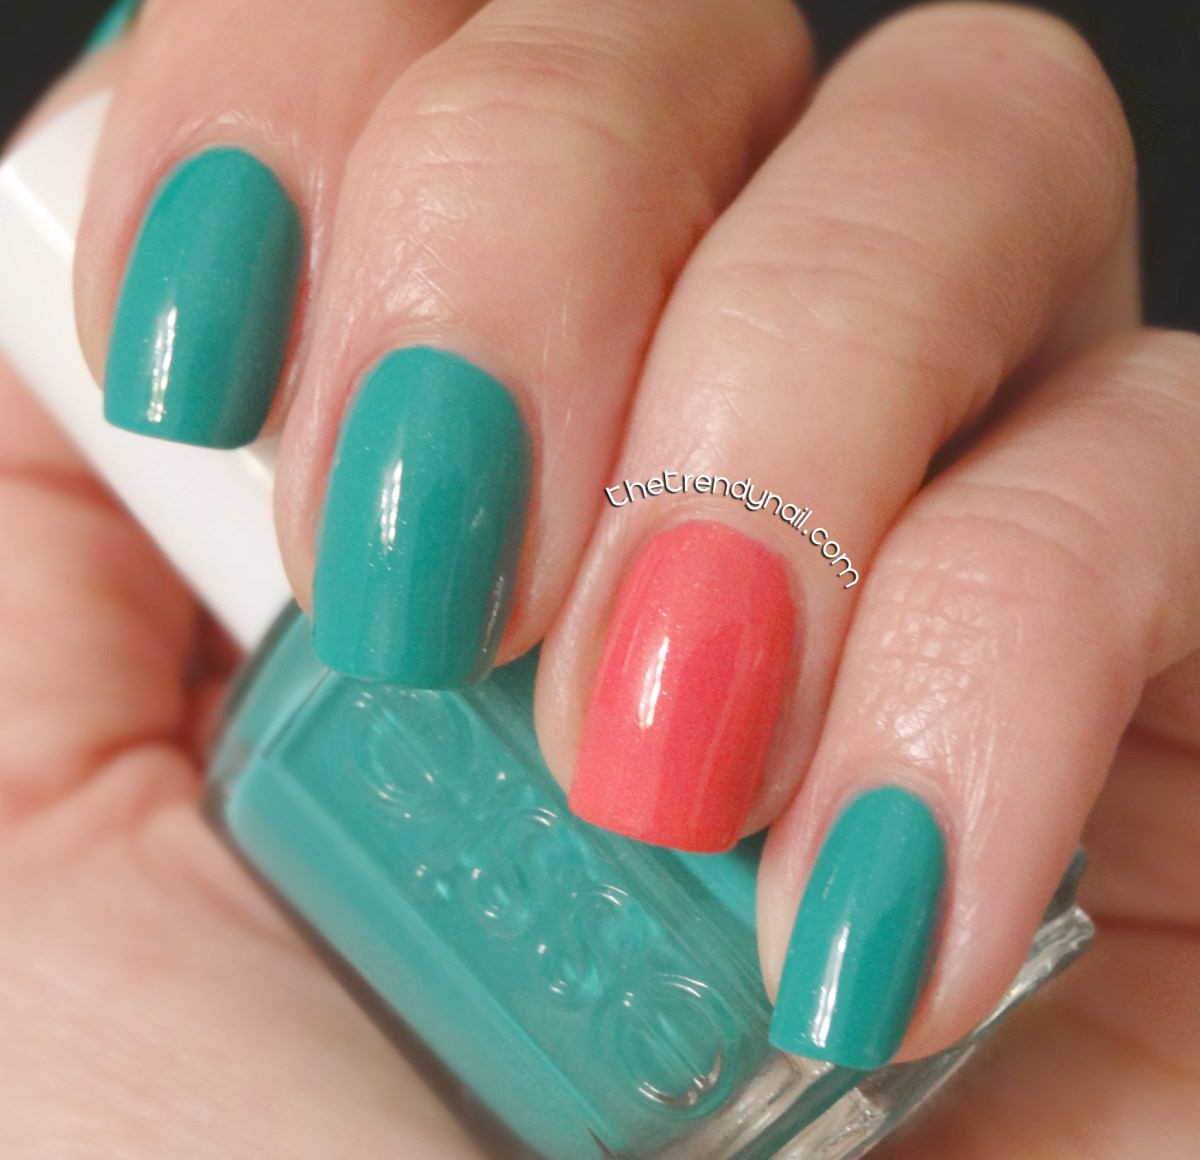 Rock The Boat with Essie's Naughty Nautical Collection